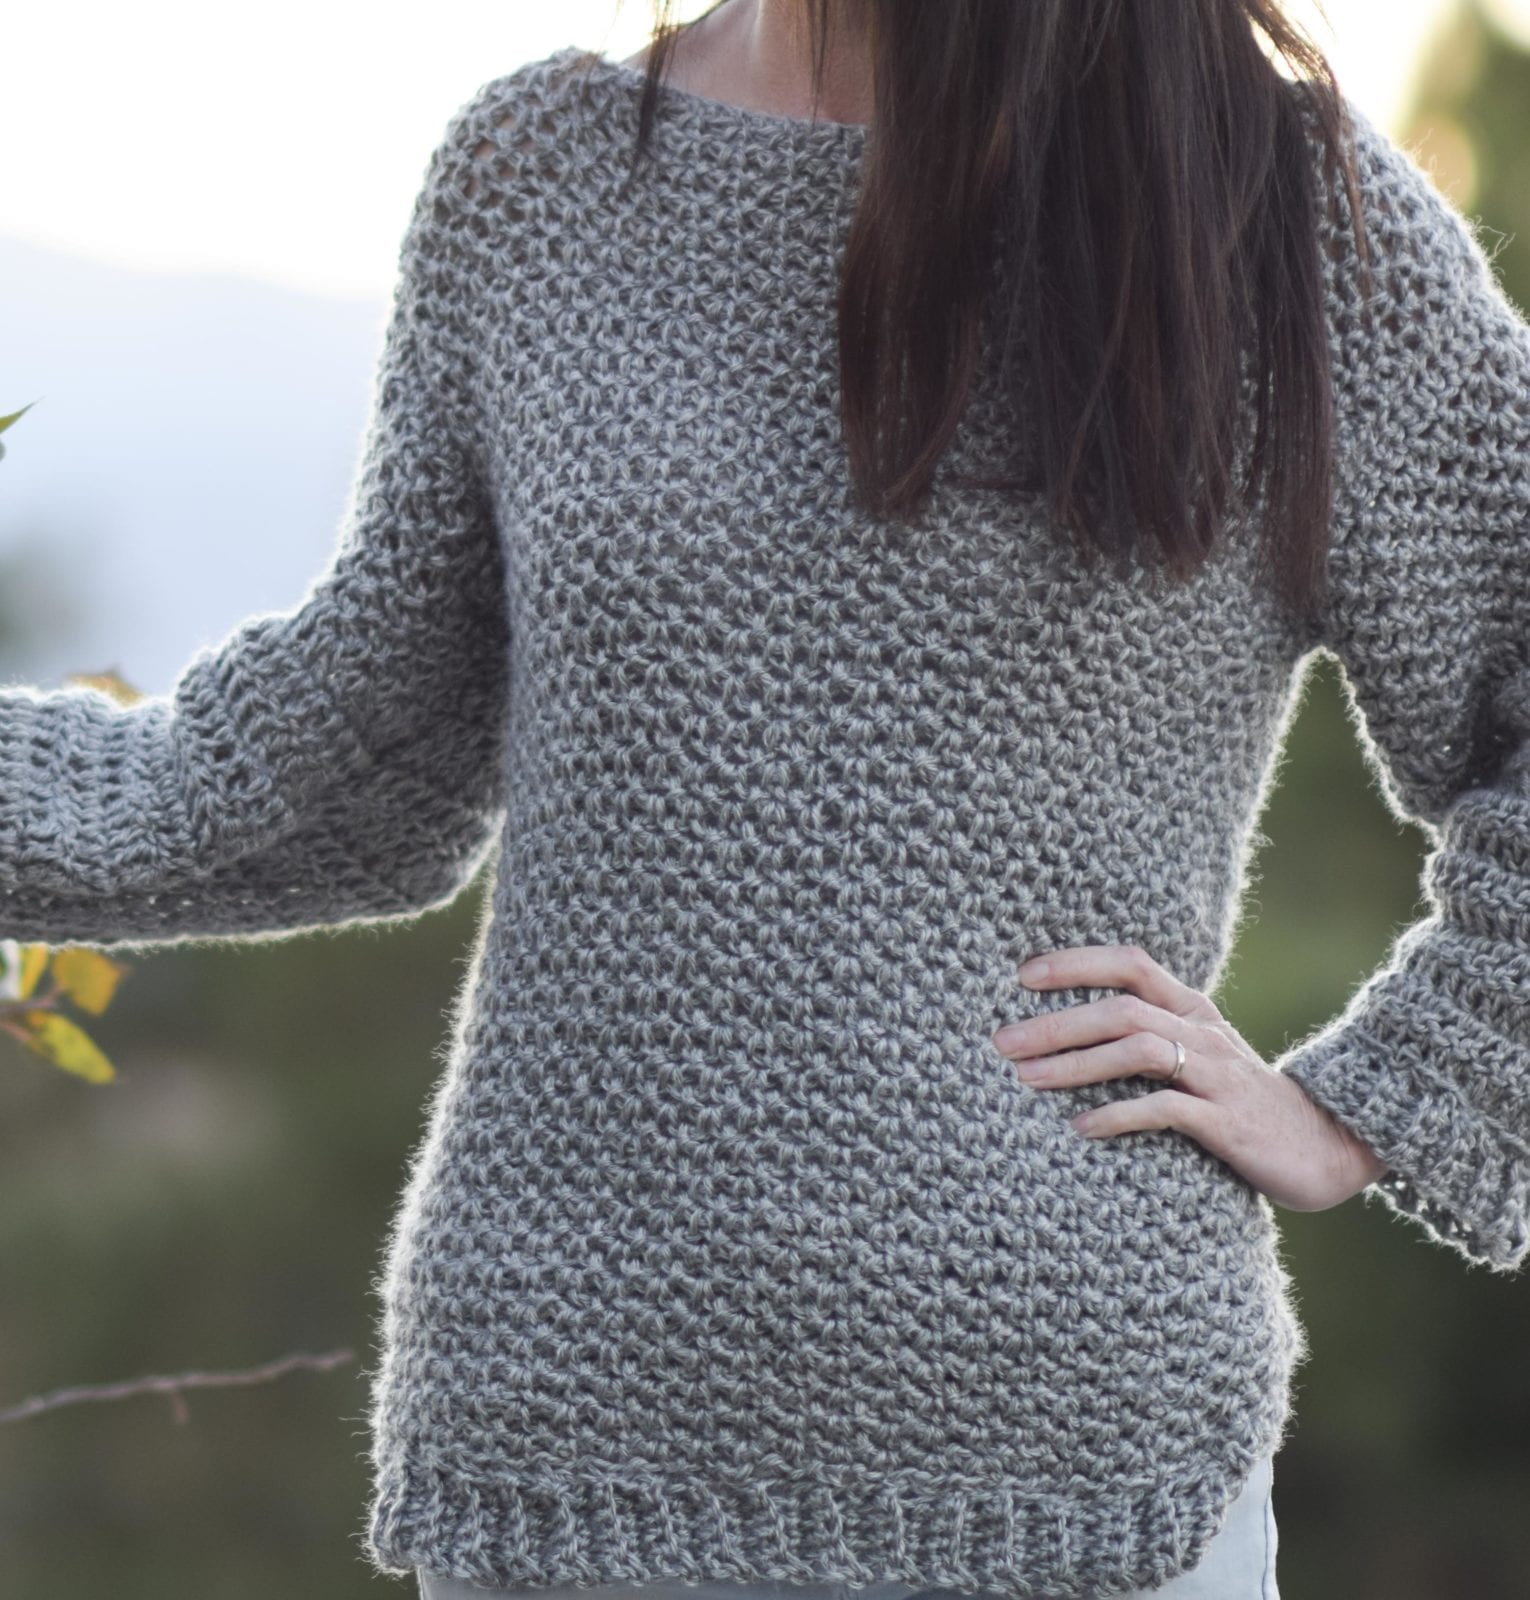 Crochet for cardigan beginners chunky easy free pattern topshop asos